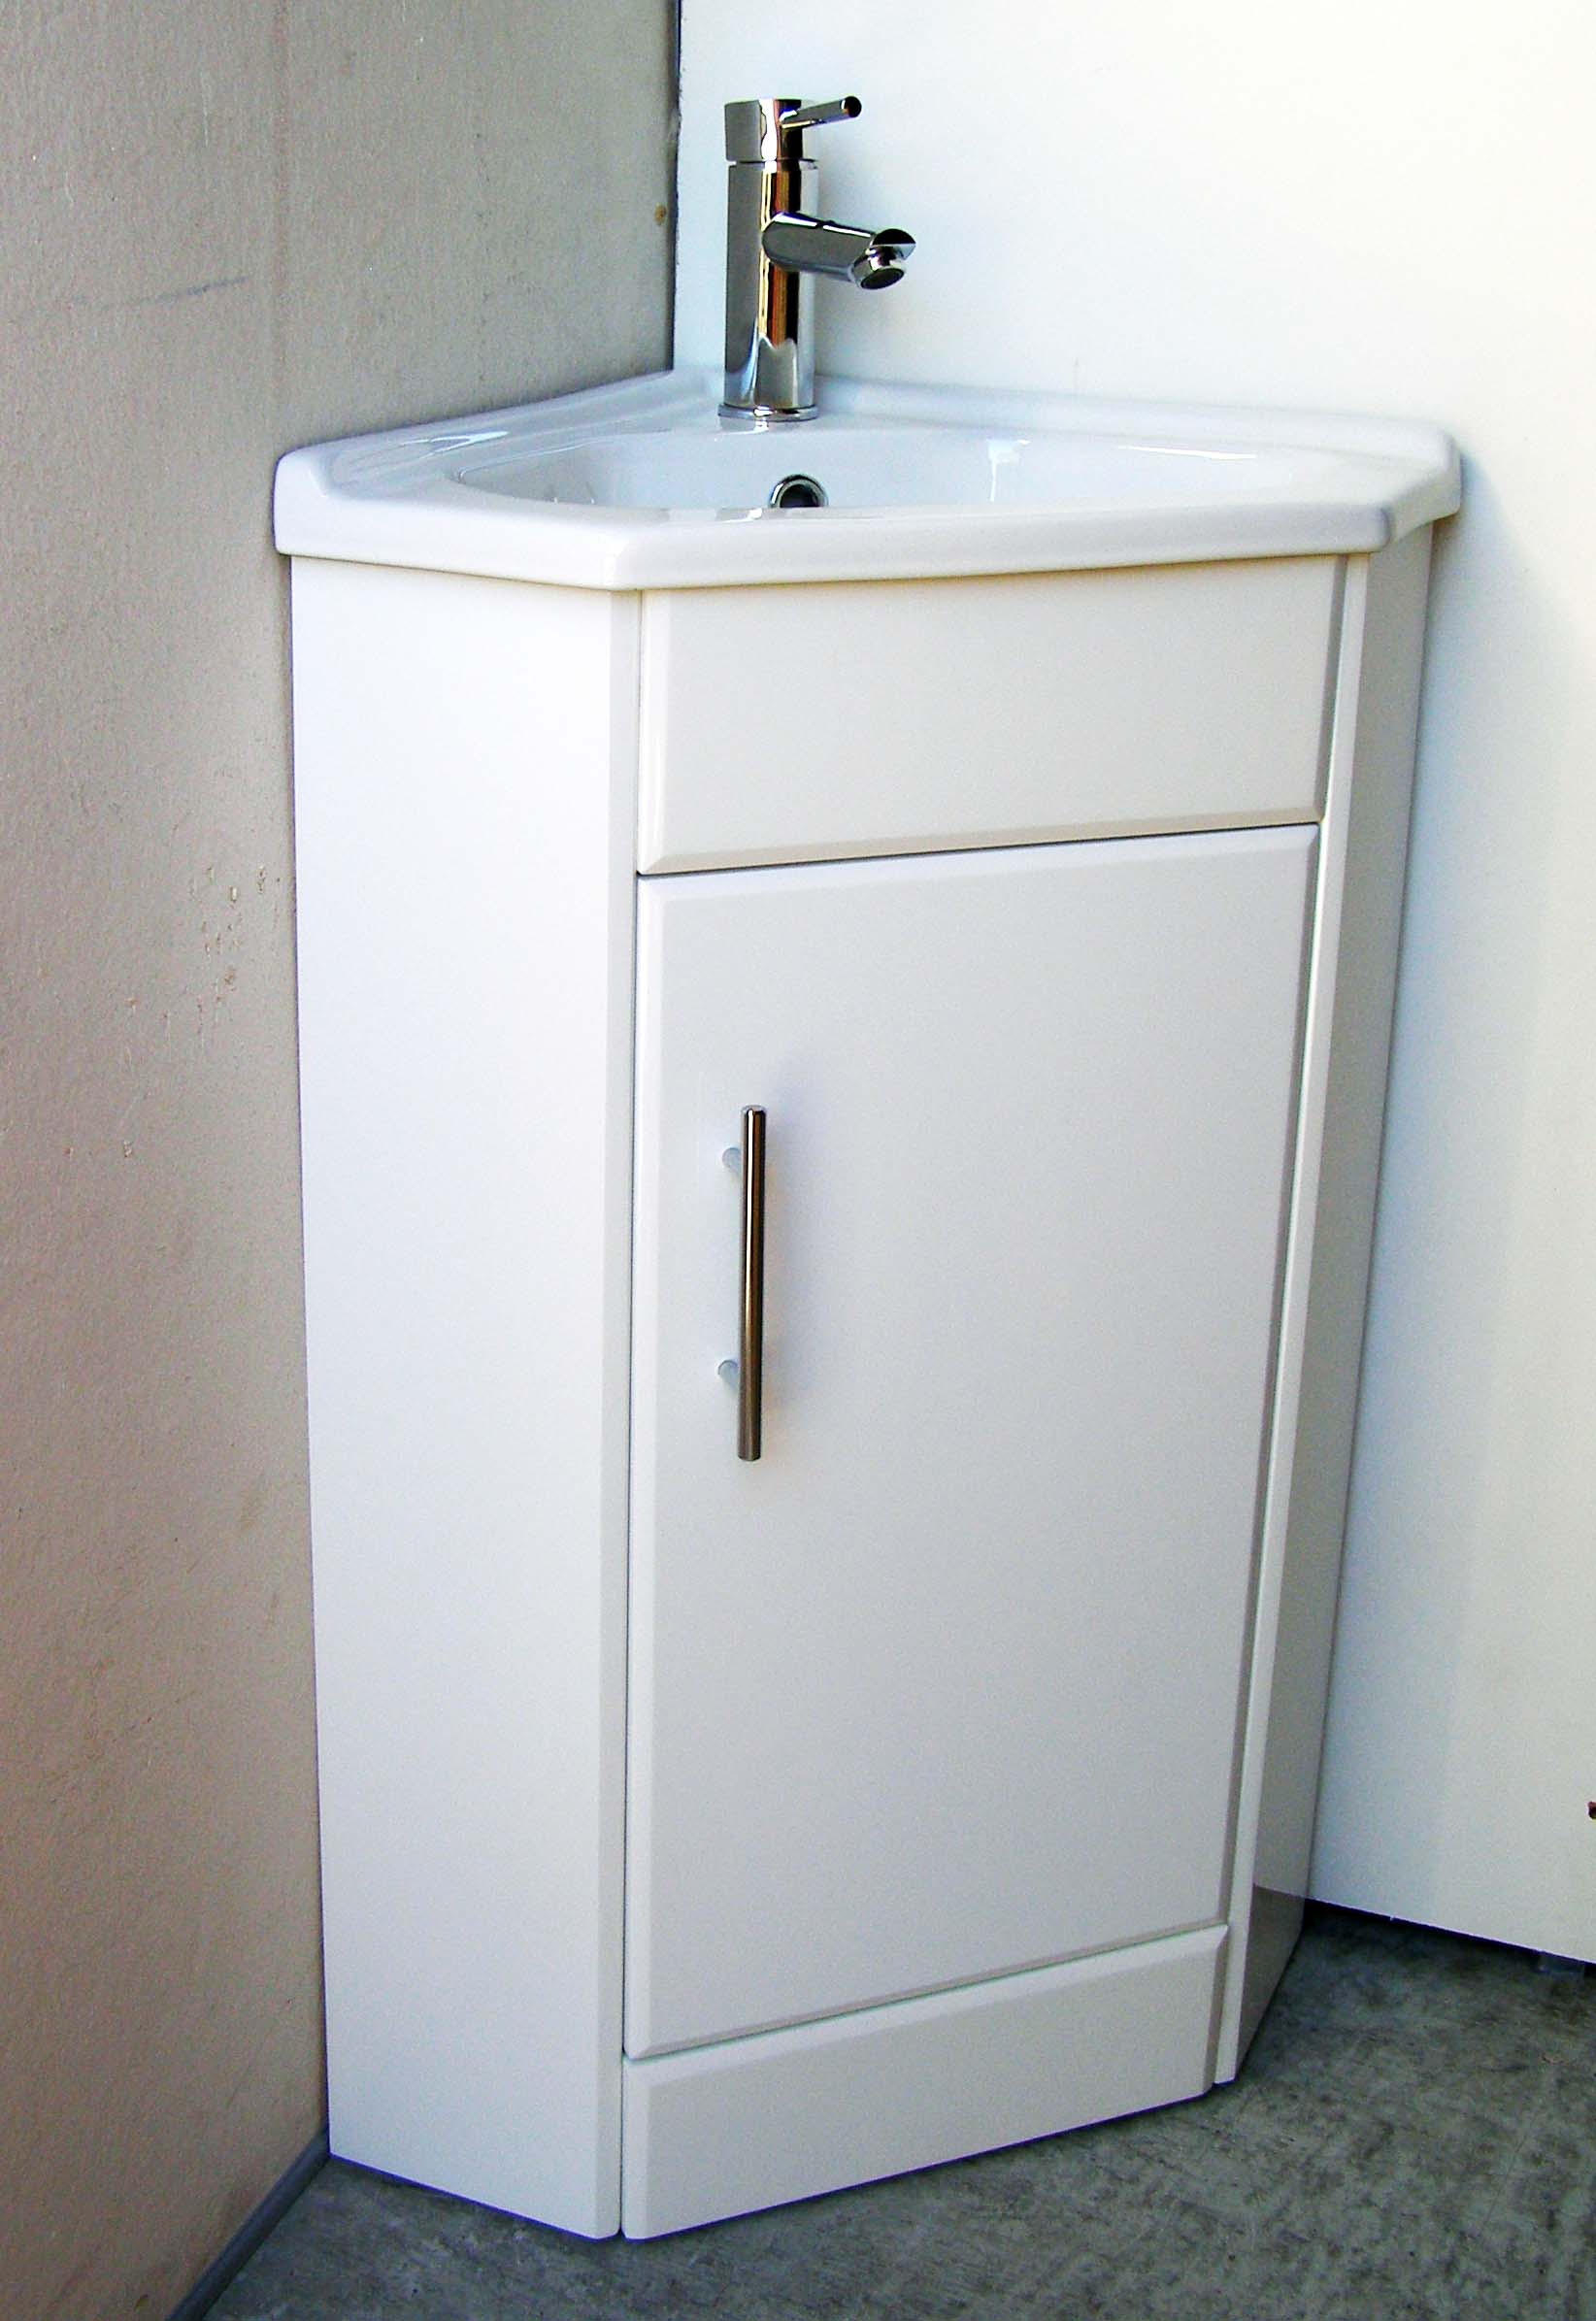 Corner Vanity 400 400x400mm Corner Vanity With Ceramic